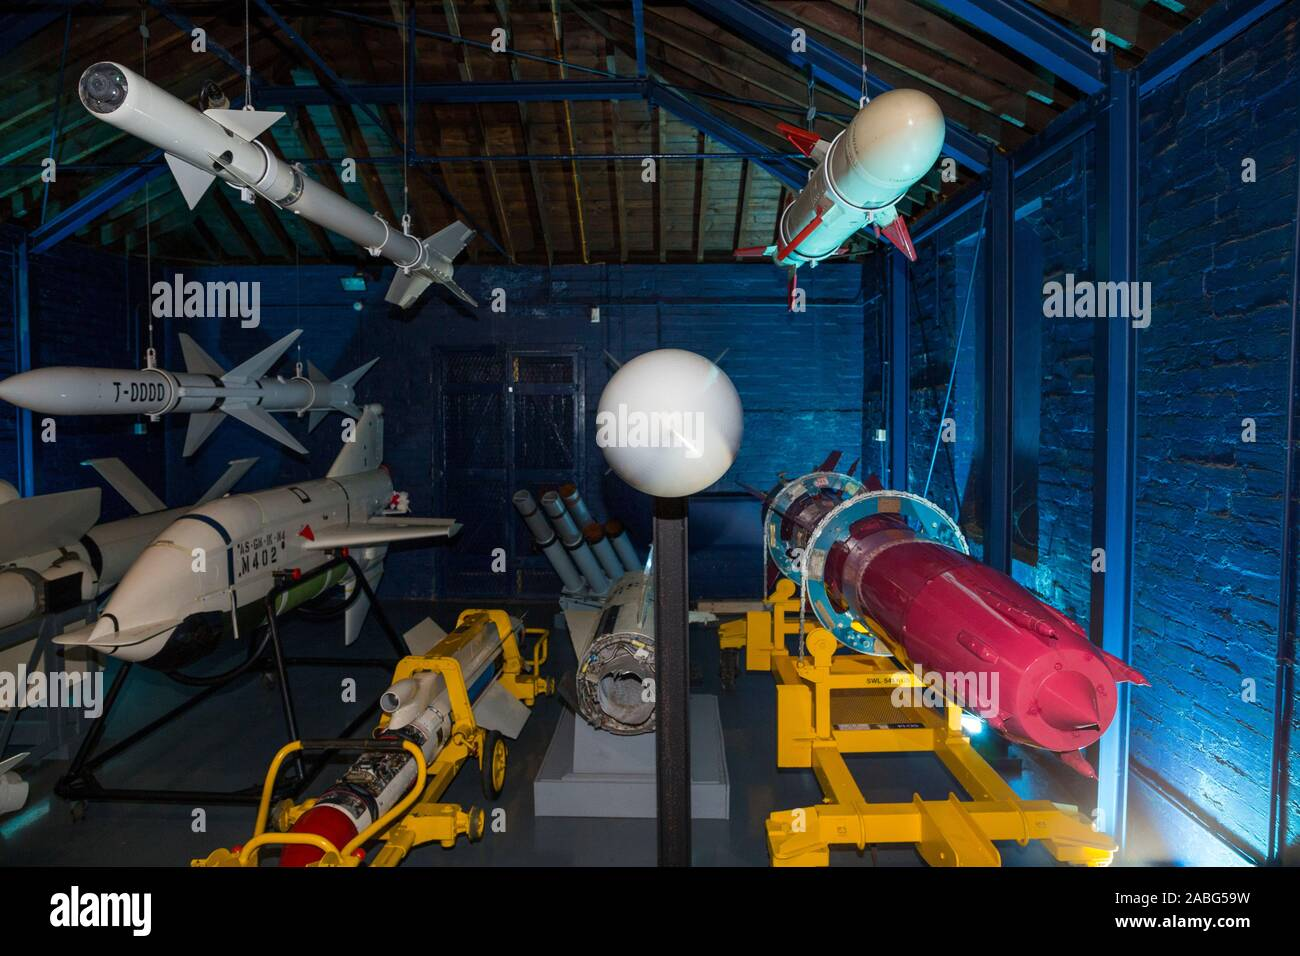 Arrangement display exhibition of vintage missiles at the Explosion Museum of Naval Firepower; the Royal Navy's former armaments depot of Priddy's Hard, in Gosport. UK (105) Stock Photo